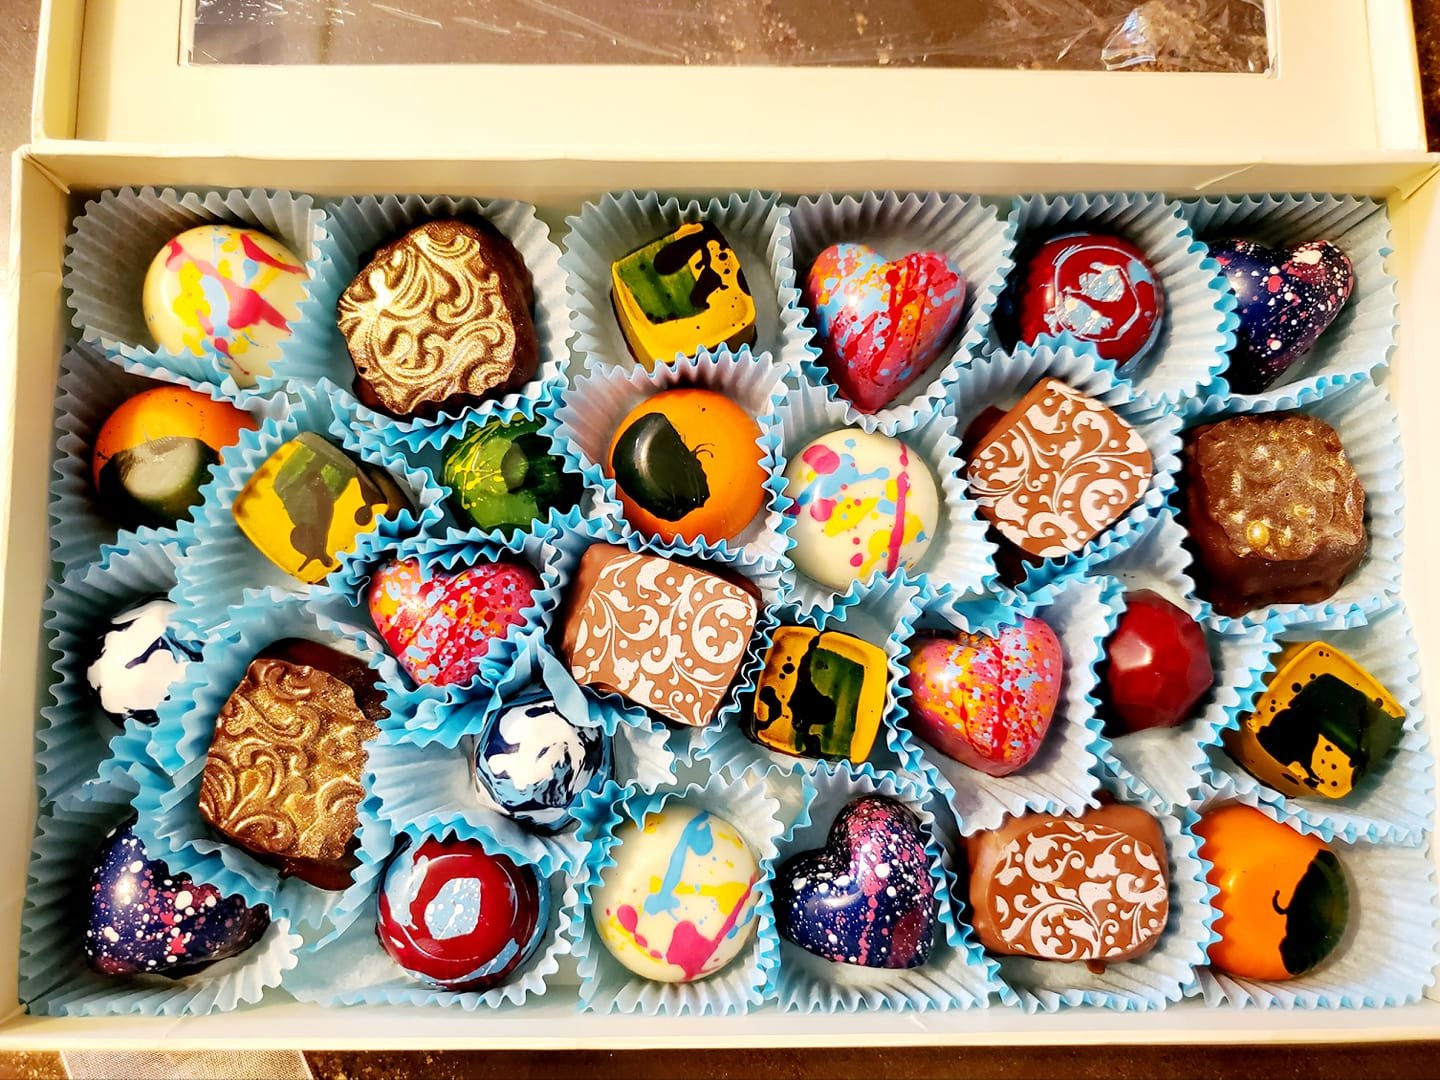 Sweet move: Hand-crafted candy company opening store in Trussville